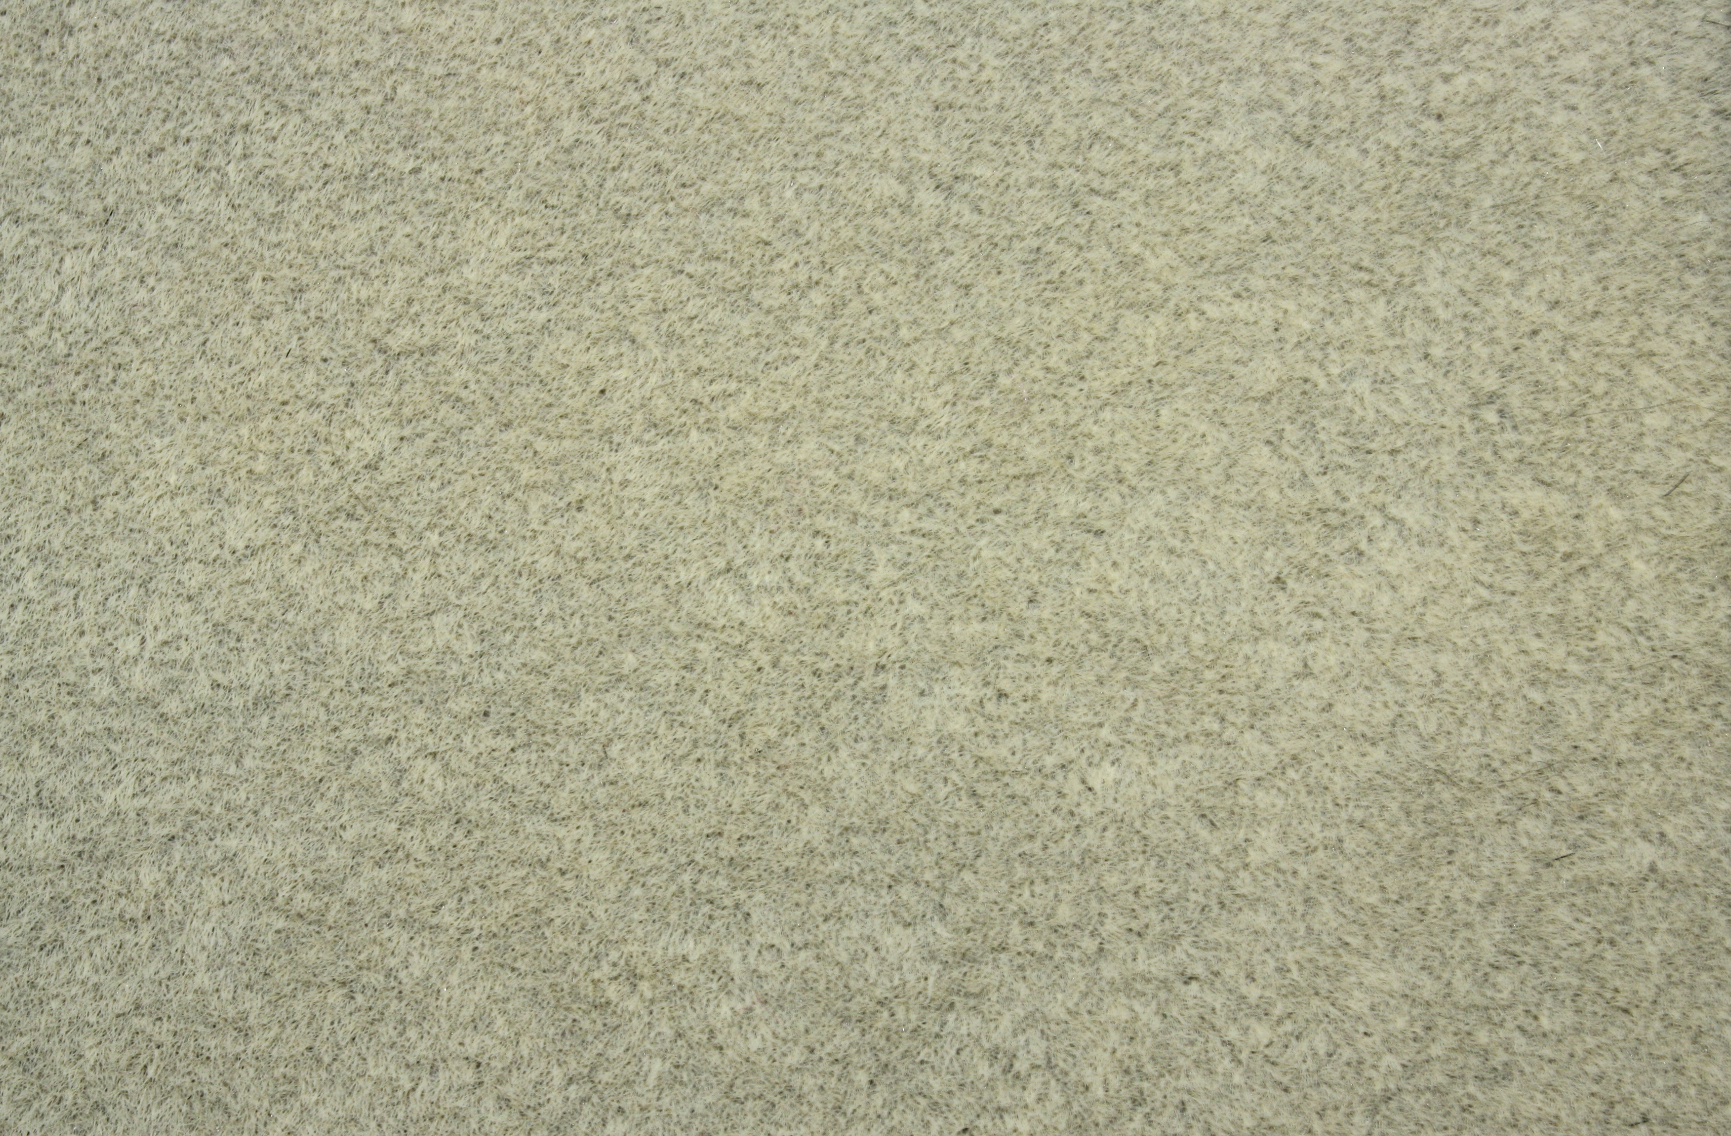 natural flocked auto carpet